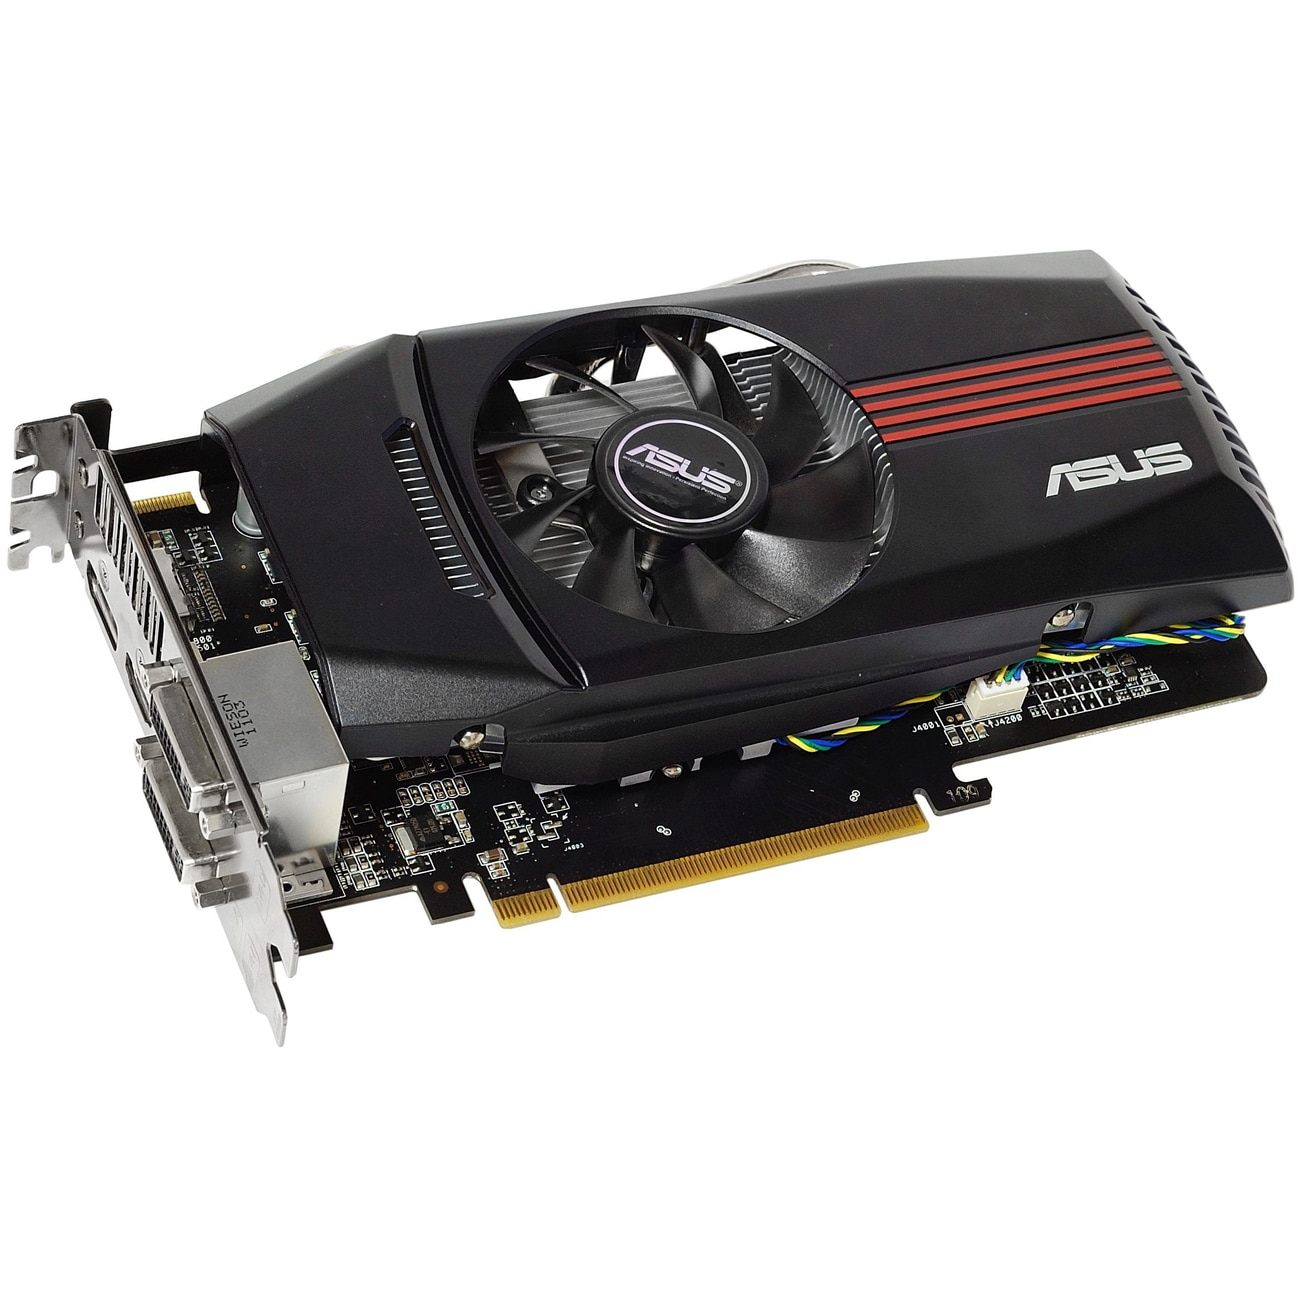 Asus HD7770-DC-1GD5-V2 Radeon HD 7770 Graphic Card w/ $10 Mail-in Rebate